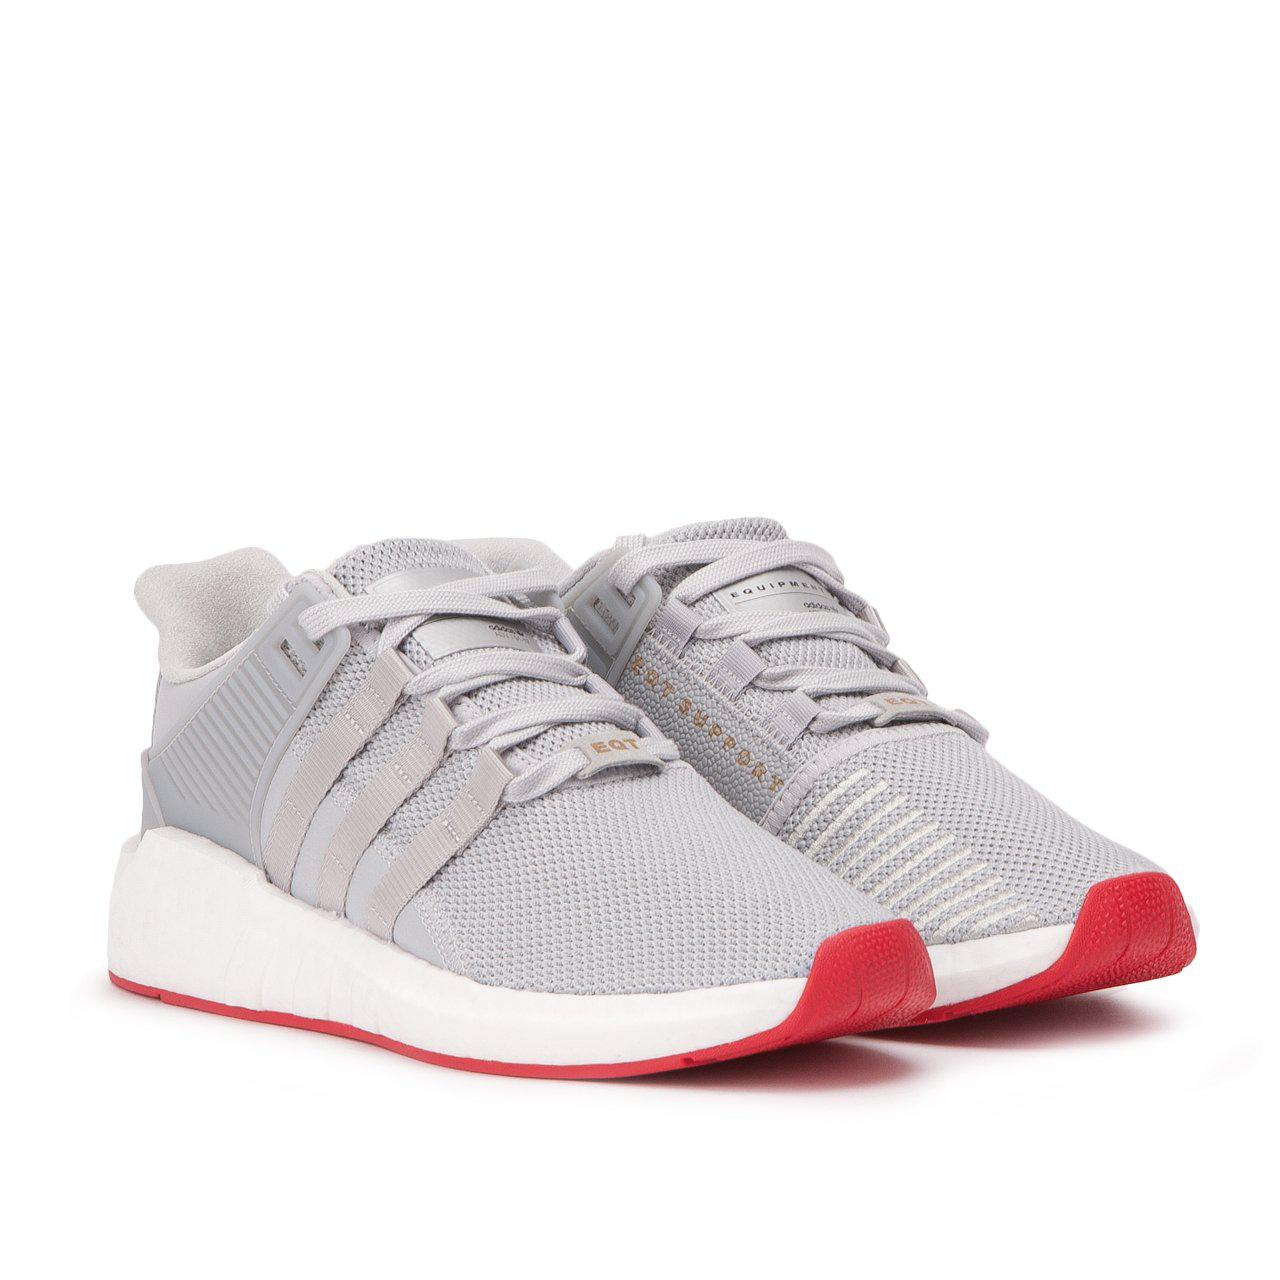 save off fe3f2 a1eb1 adidas Eqt Support 9317 Shoes in Metallic for Men - Lyst